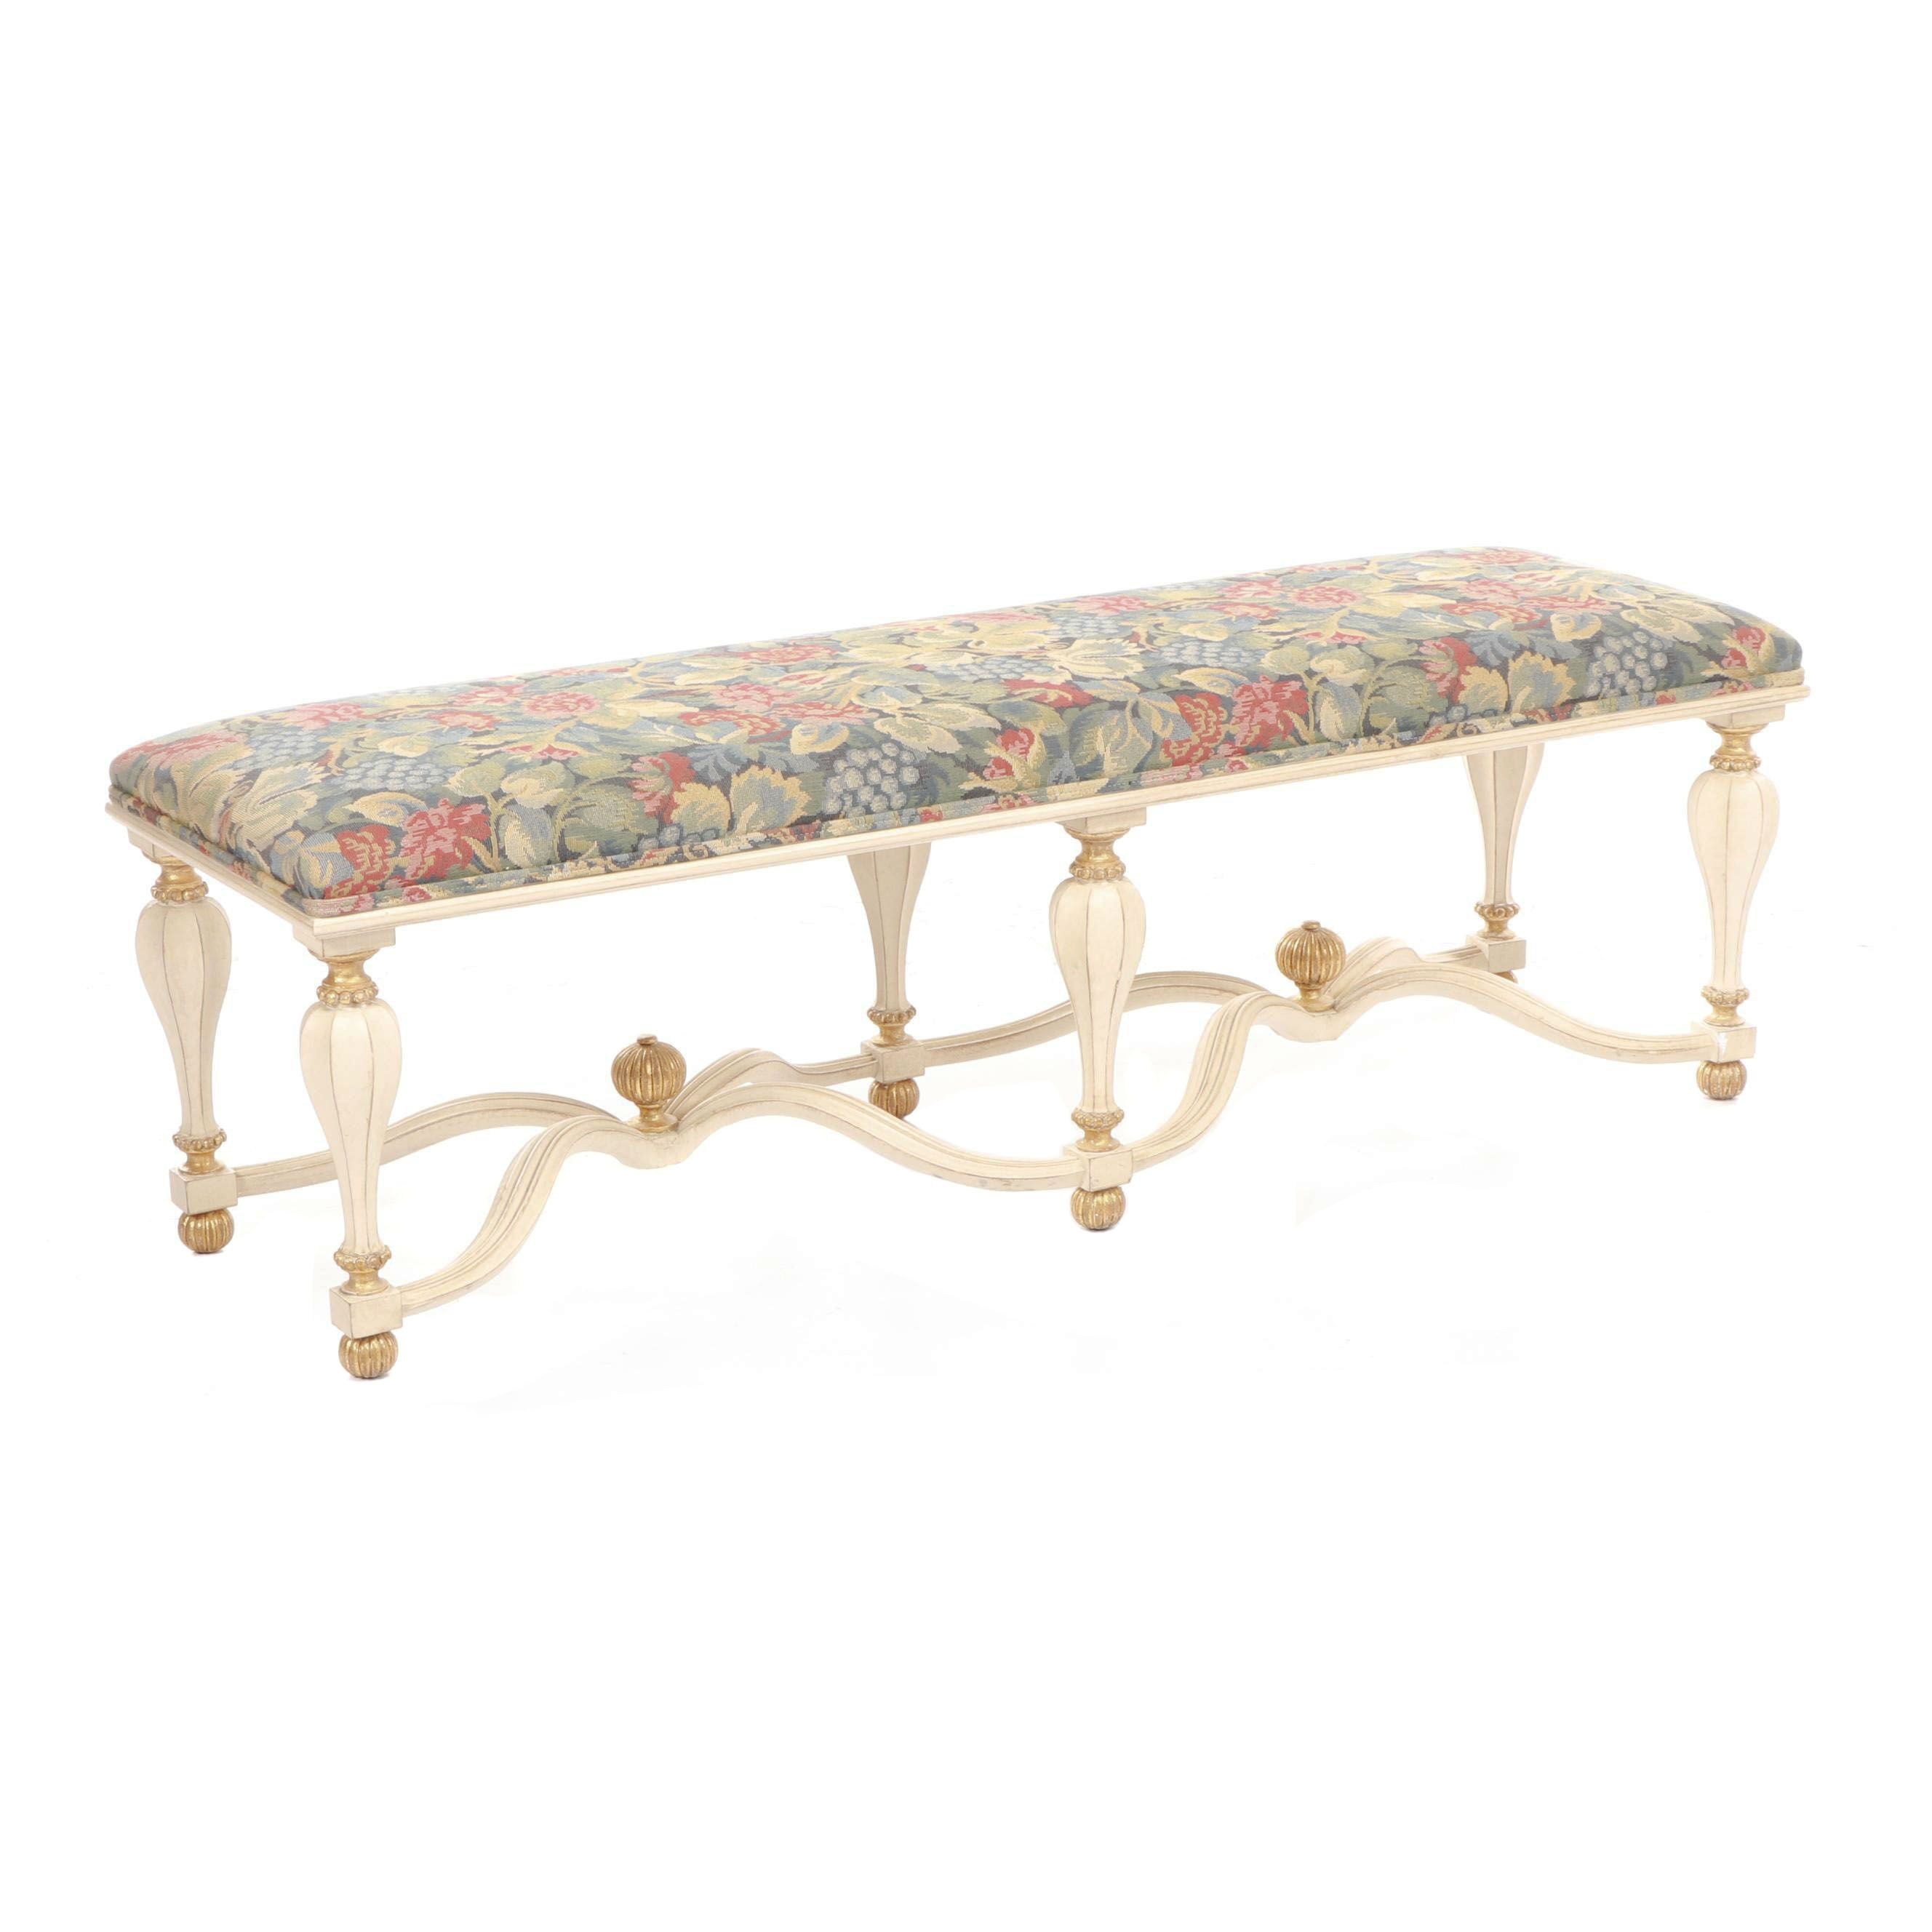 "Contemporary Decorative Crafts Italy ""Pavia"" Floral Upholstered Bench"